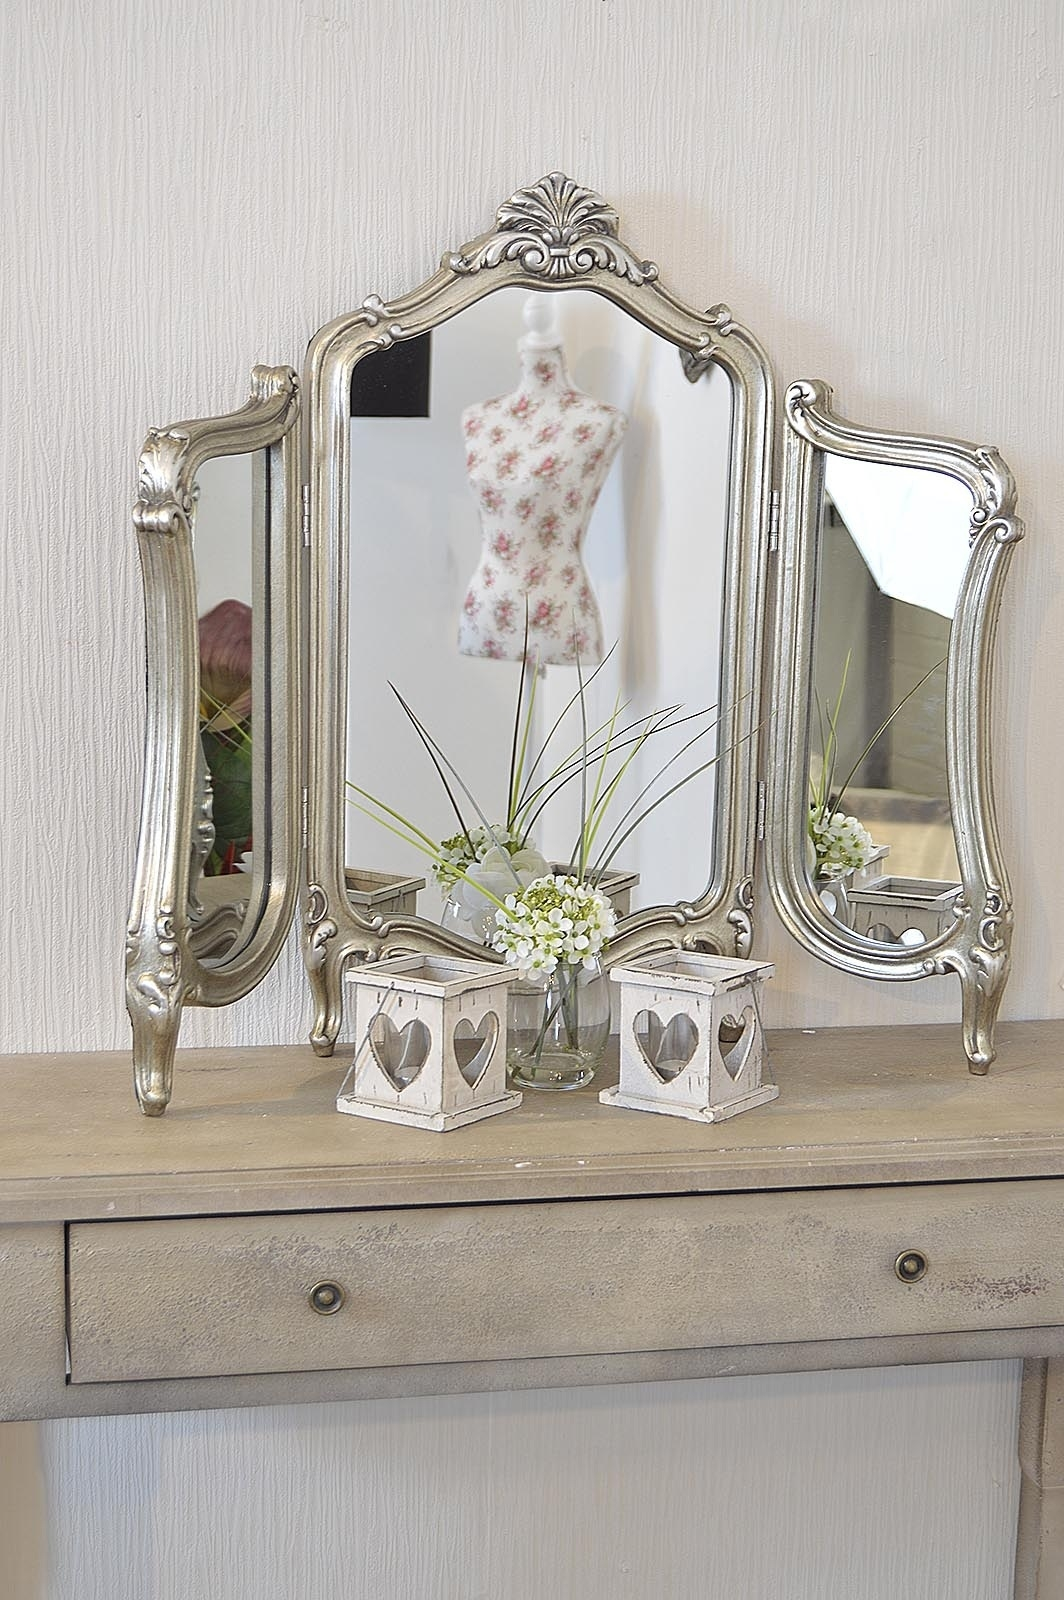 Stunning Antique Design Free Standing Dressing Table Mirror M315 With Regard To Free Standing Dressing Table Mirrors (Image 13 of 15)